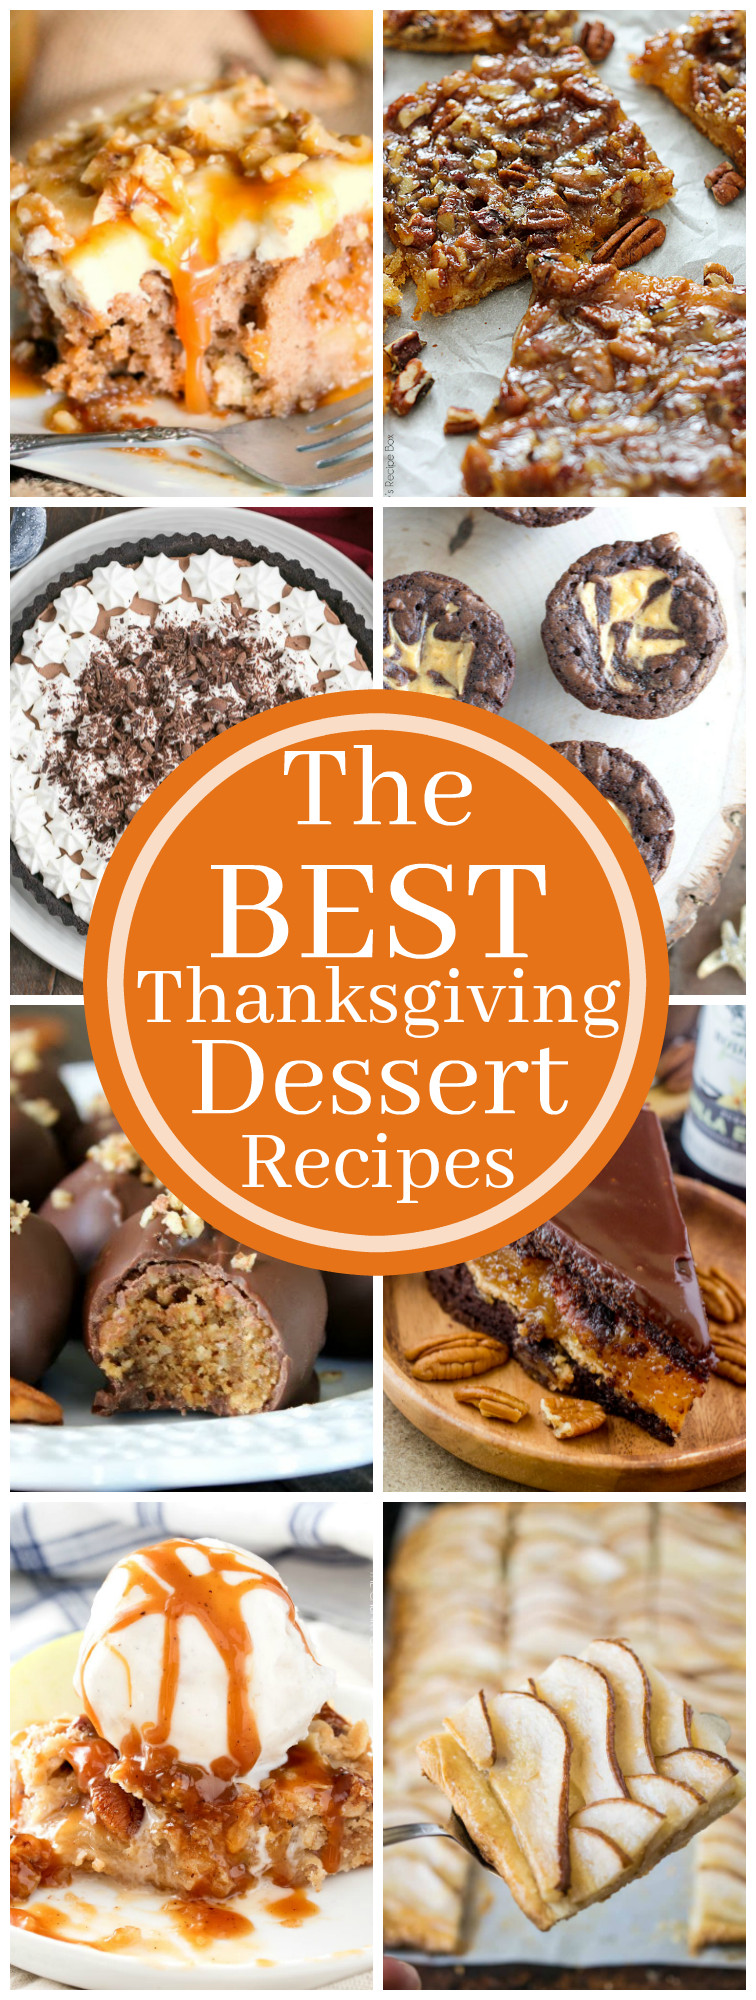 Best Thanksgiving Pie Recipes  The Best Thanksgiving Dessert Recipes The Chunky Chef